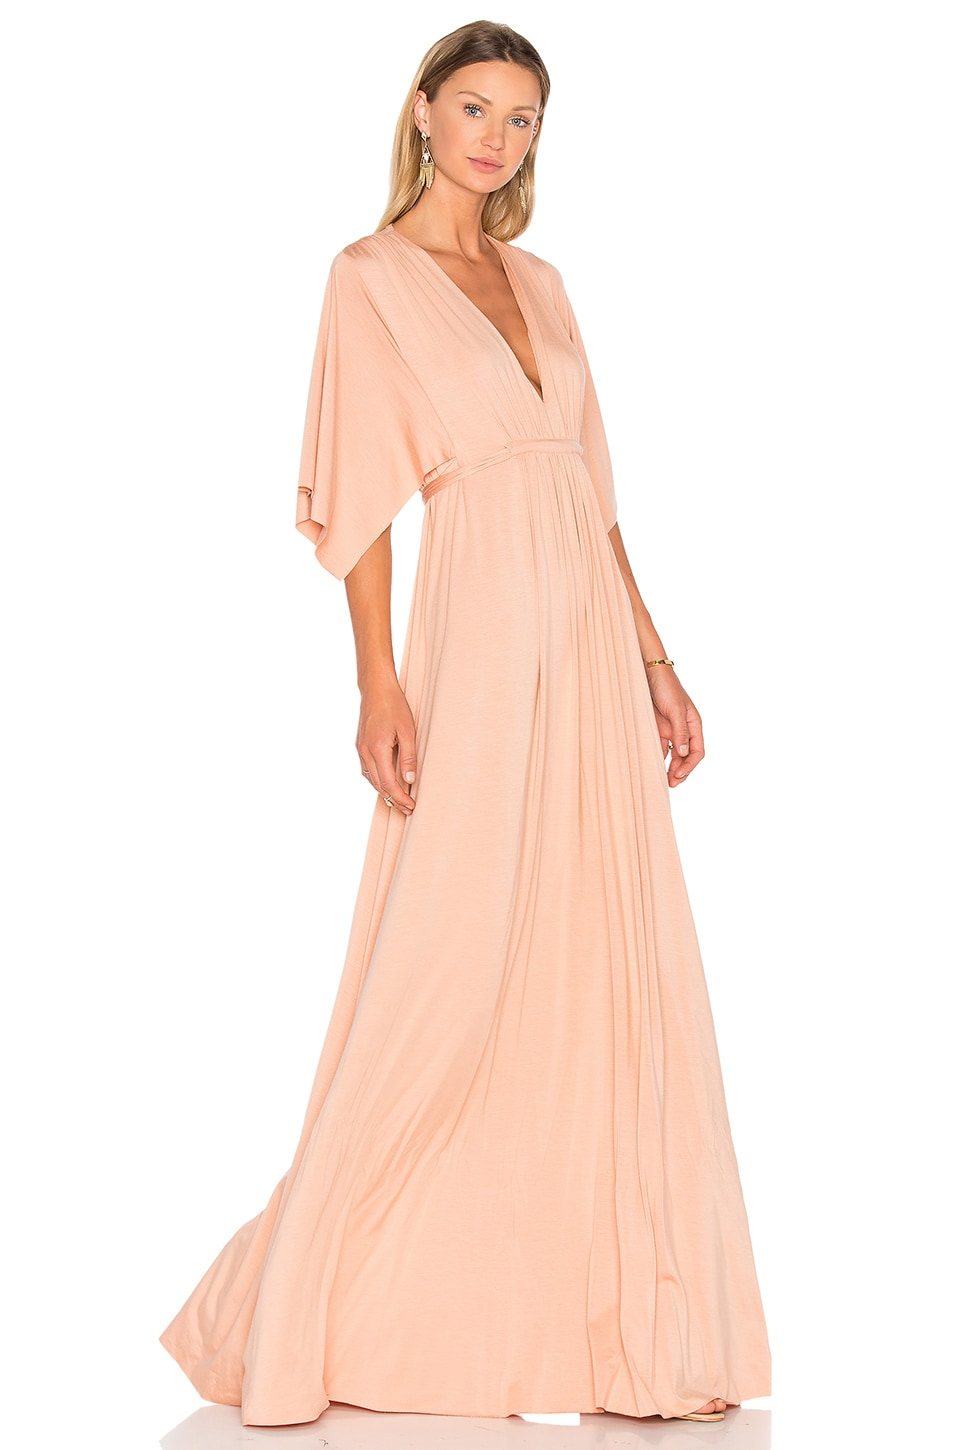 Rachel pally caftan maxi dress in rosewater revolve rachel pally caftan maxi dress in rosewater ombrellifo Image collections